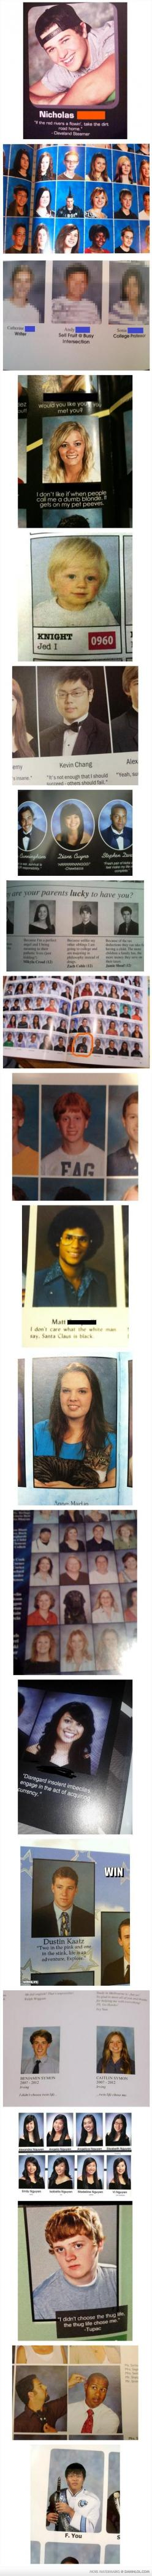 I laughed so hard..: Yearbook Pictures, Yearbook Wins, Year Book, Yearbook Funny, Funny Yearbook, Yearbook Photos, Yearbook Quotes, Yearbook Funnies, Yearbook Fails